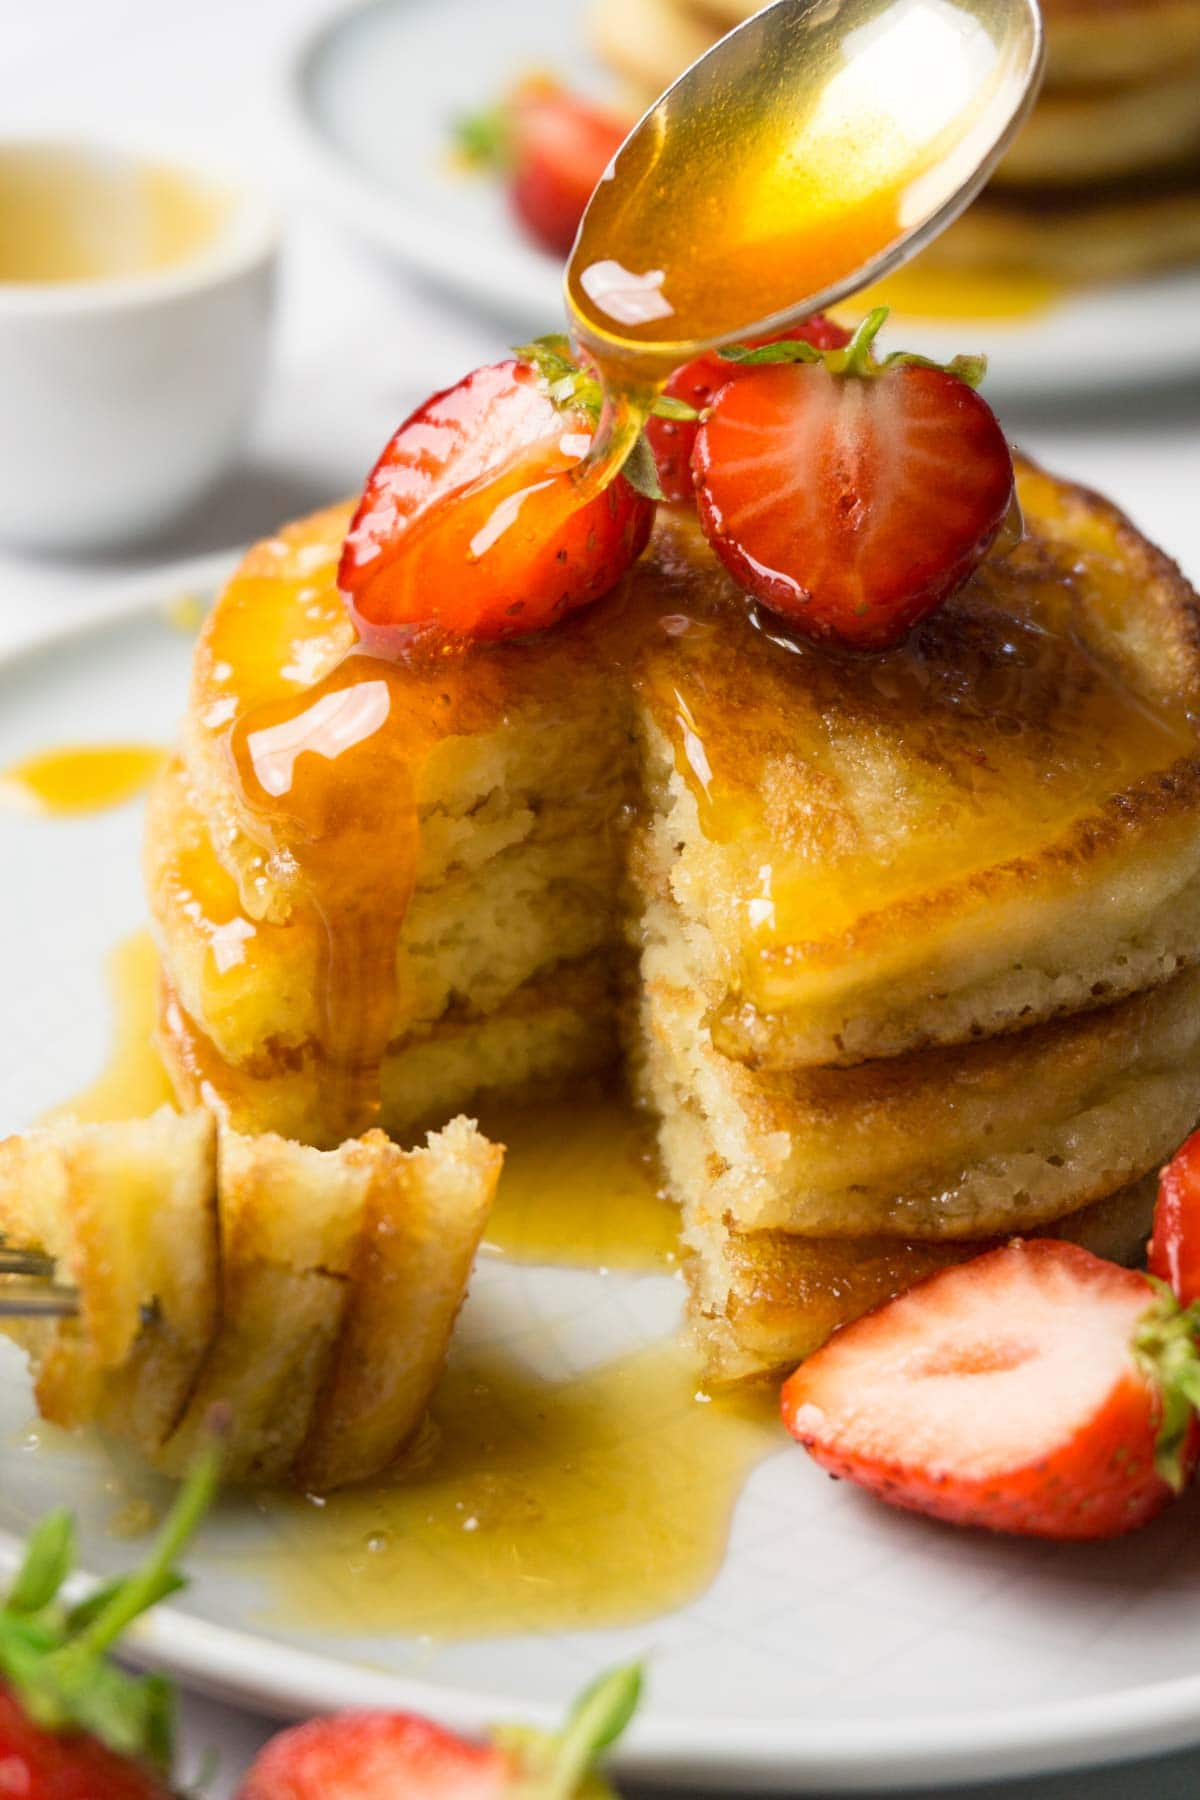 Pancake tower on a plate topped with fresh strawberries, a spoon drizzling syrup on top.